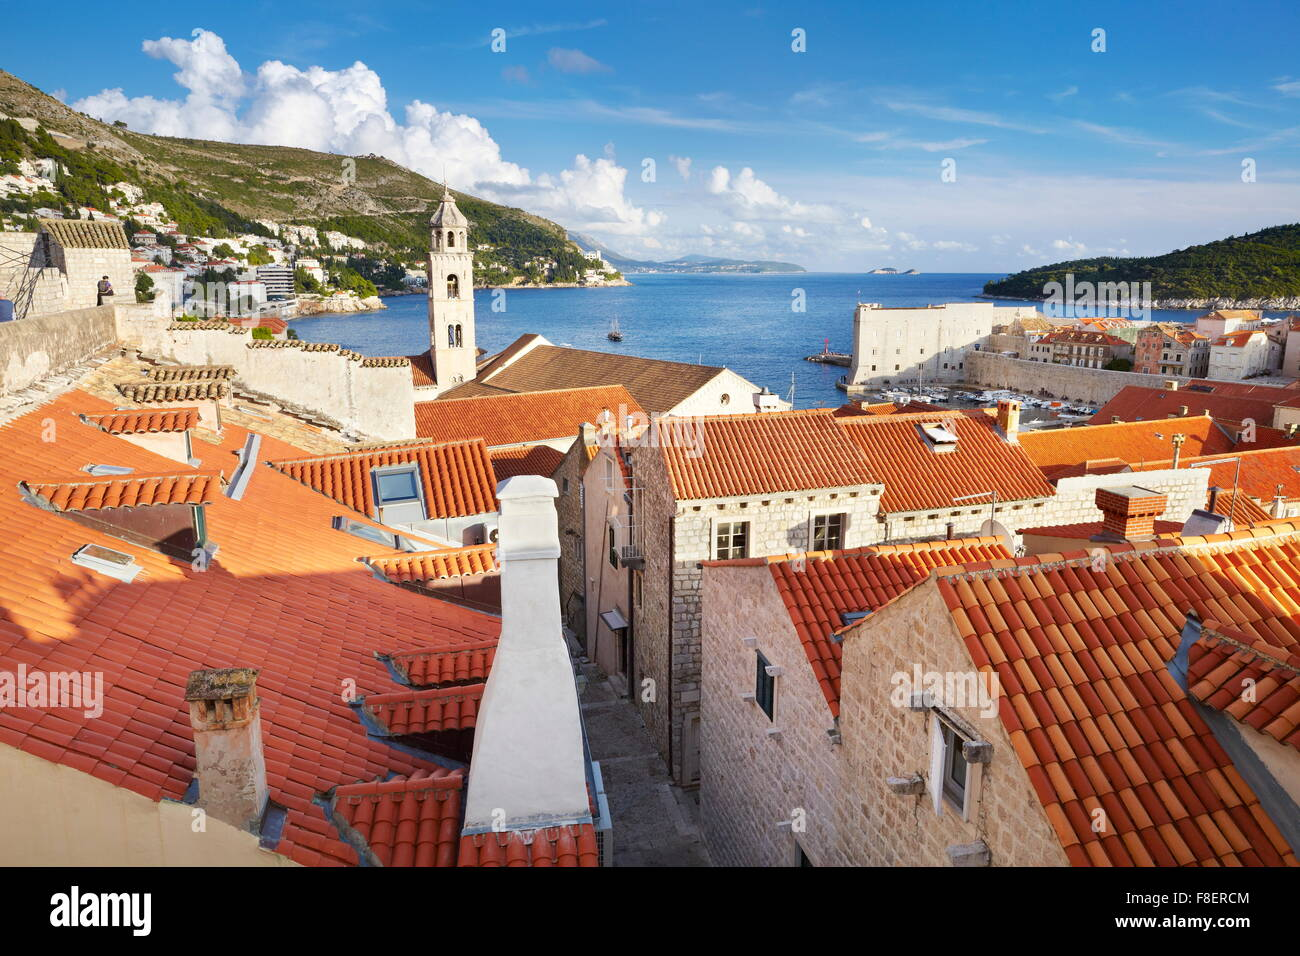 La vieille ville de Dubrovnik, Croatie Photo Stock